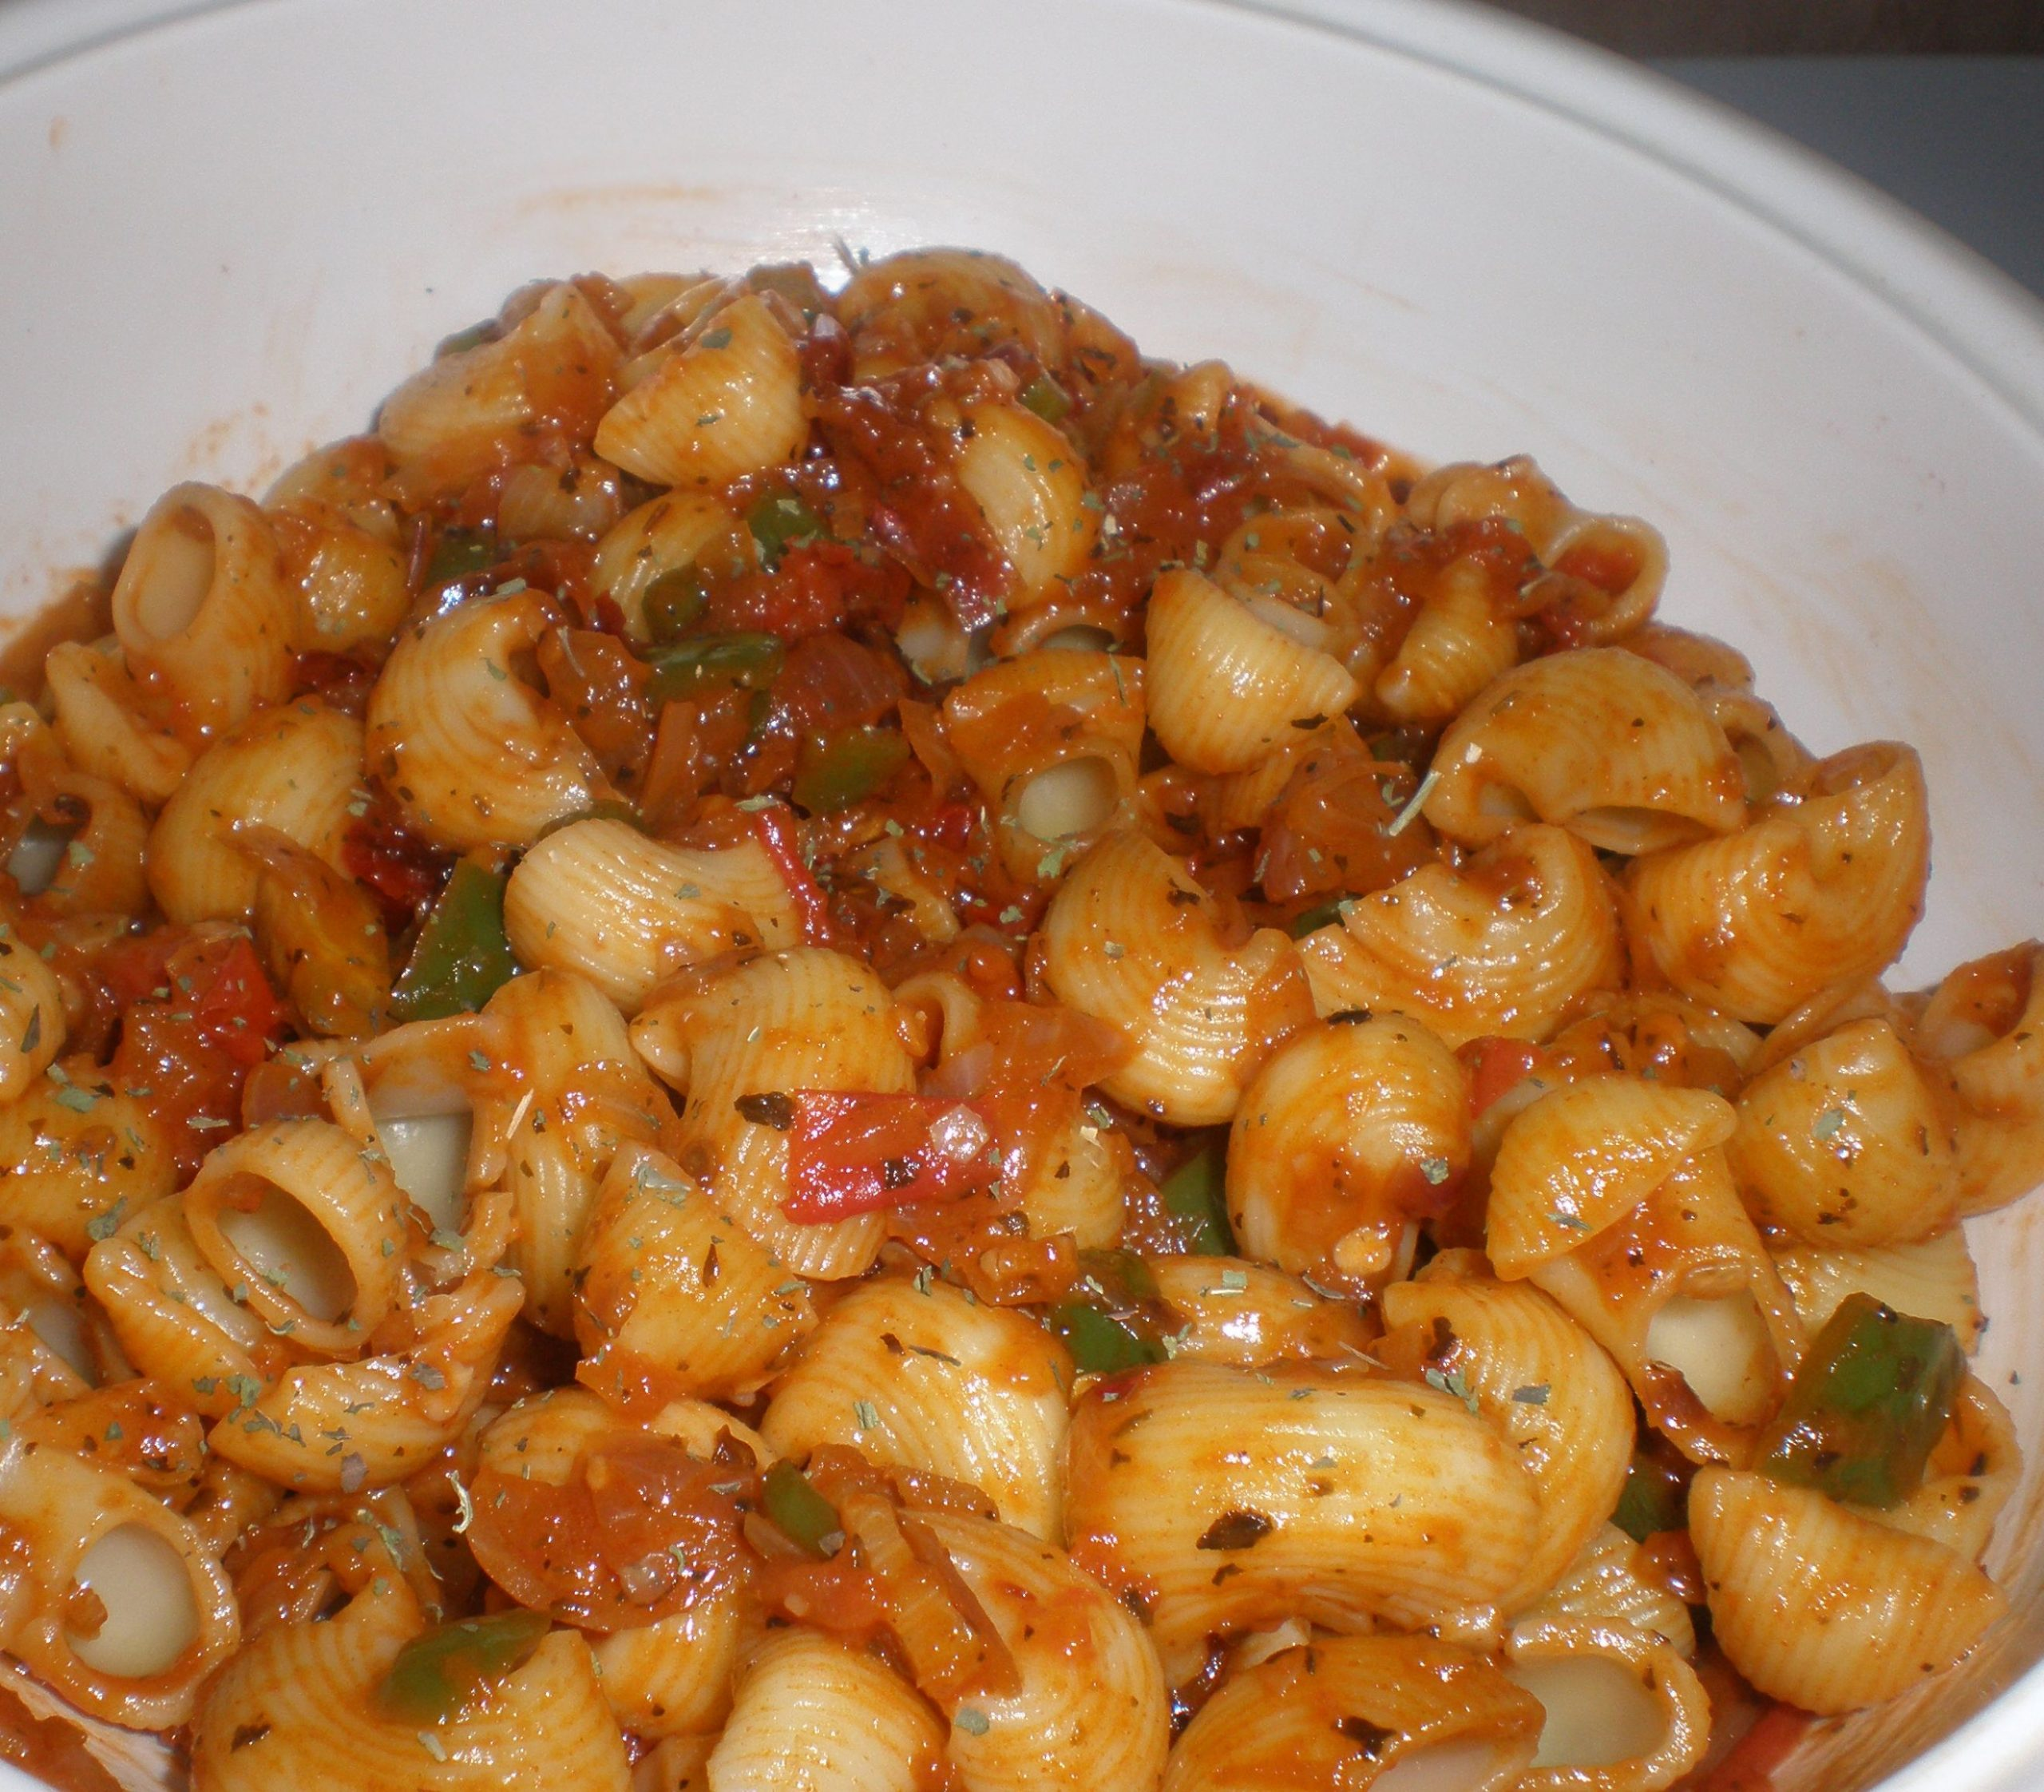 A bet and a Spicy pasta recipe | anishathefoodie